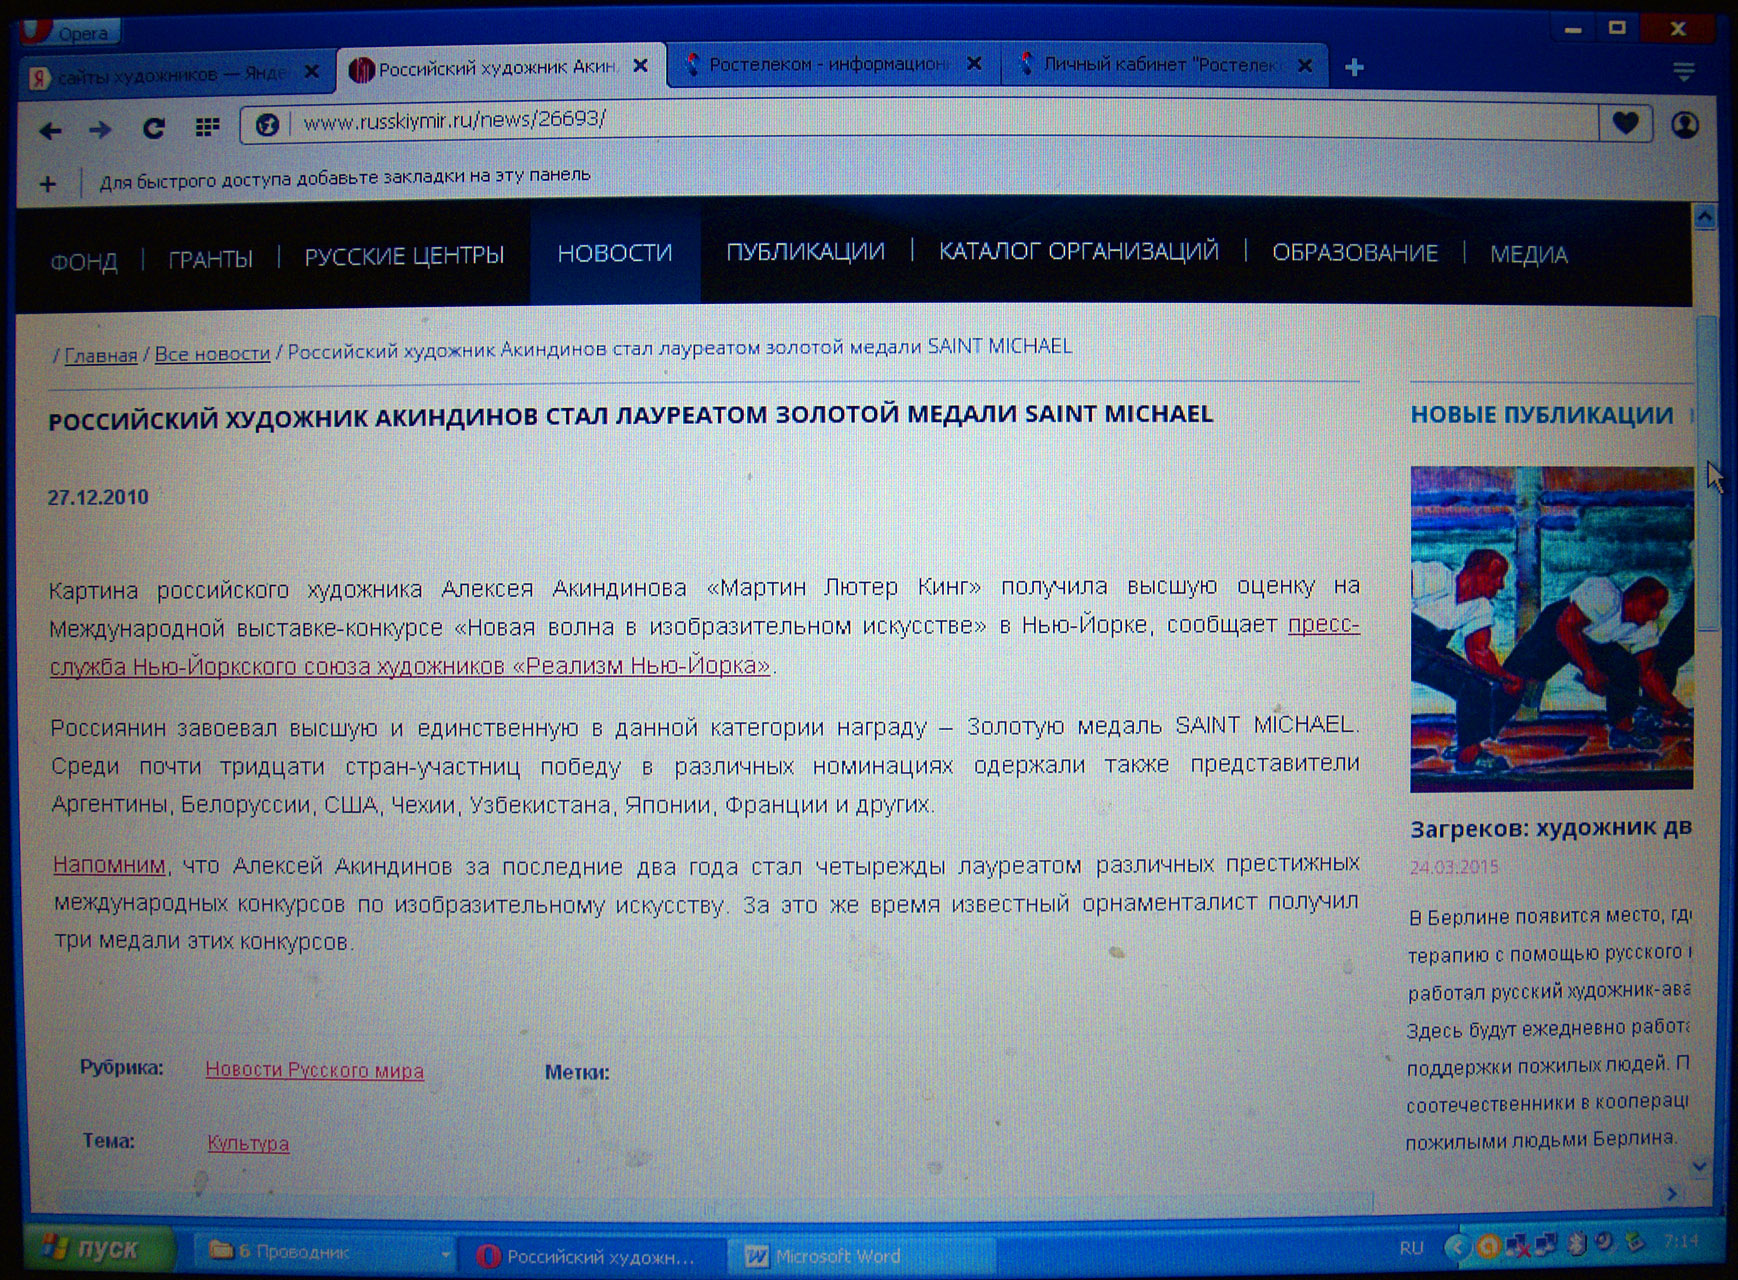 russkiy mir site laureat 2